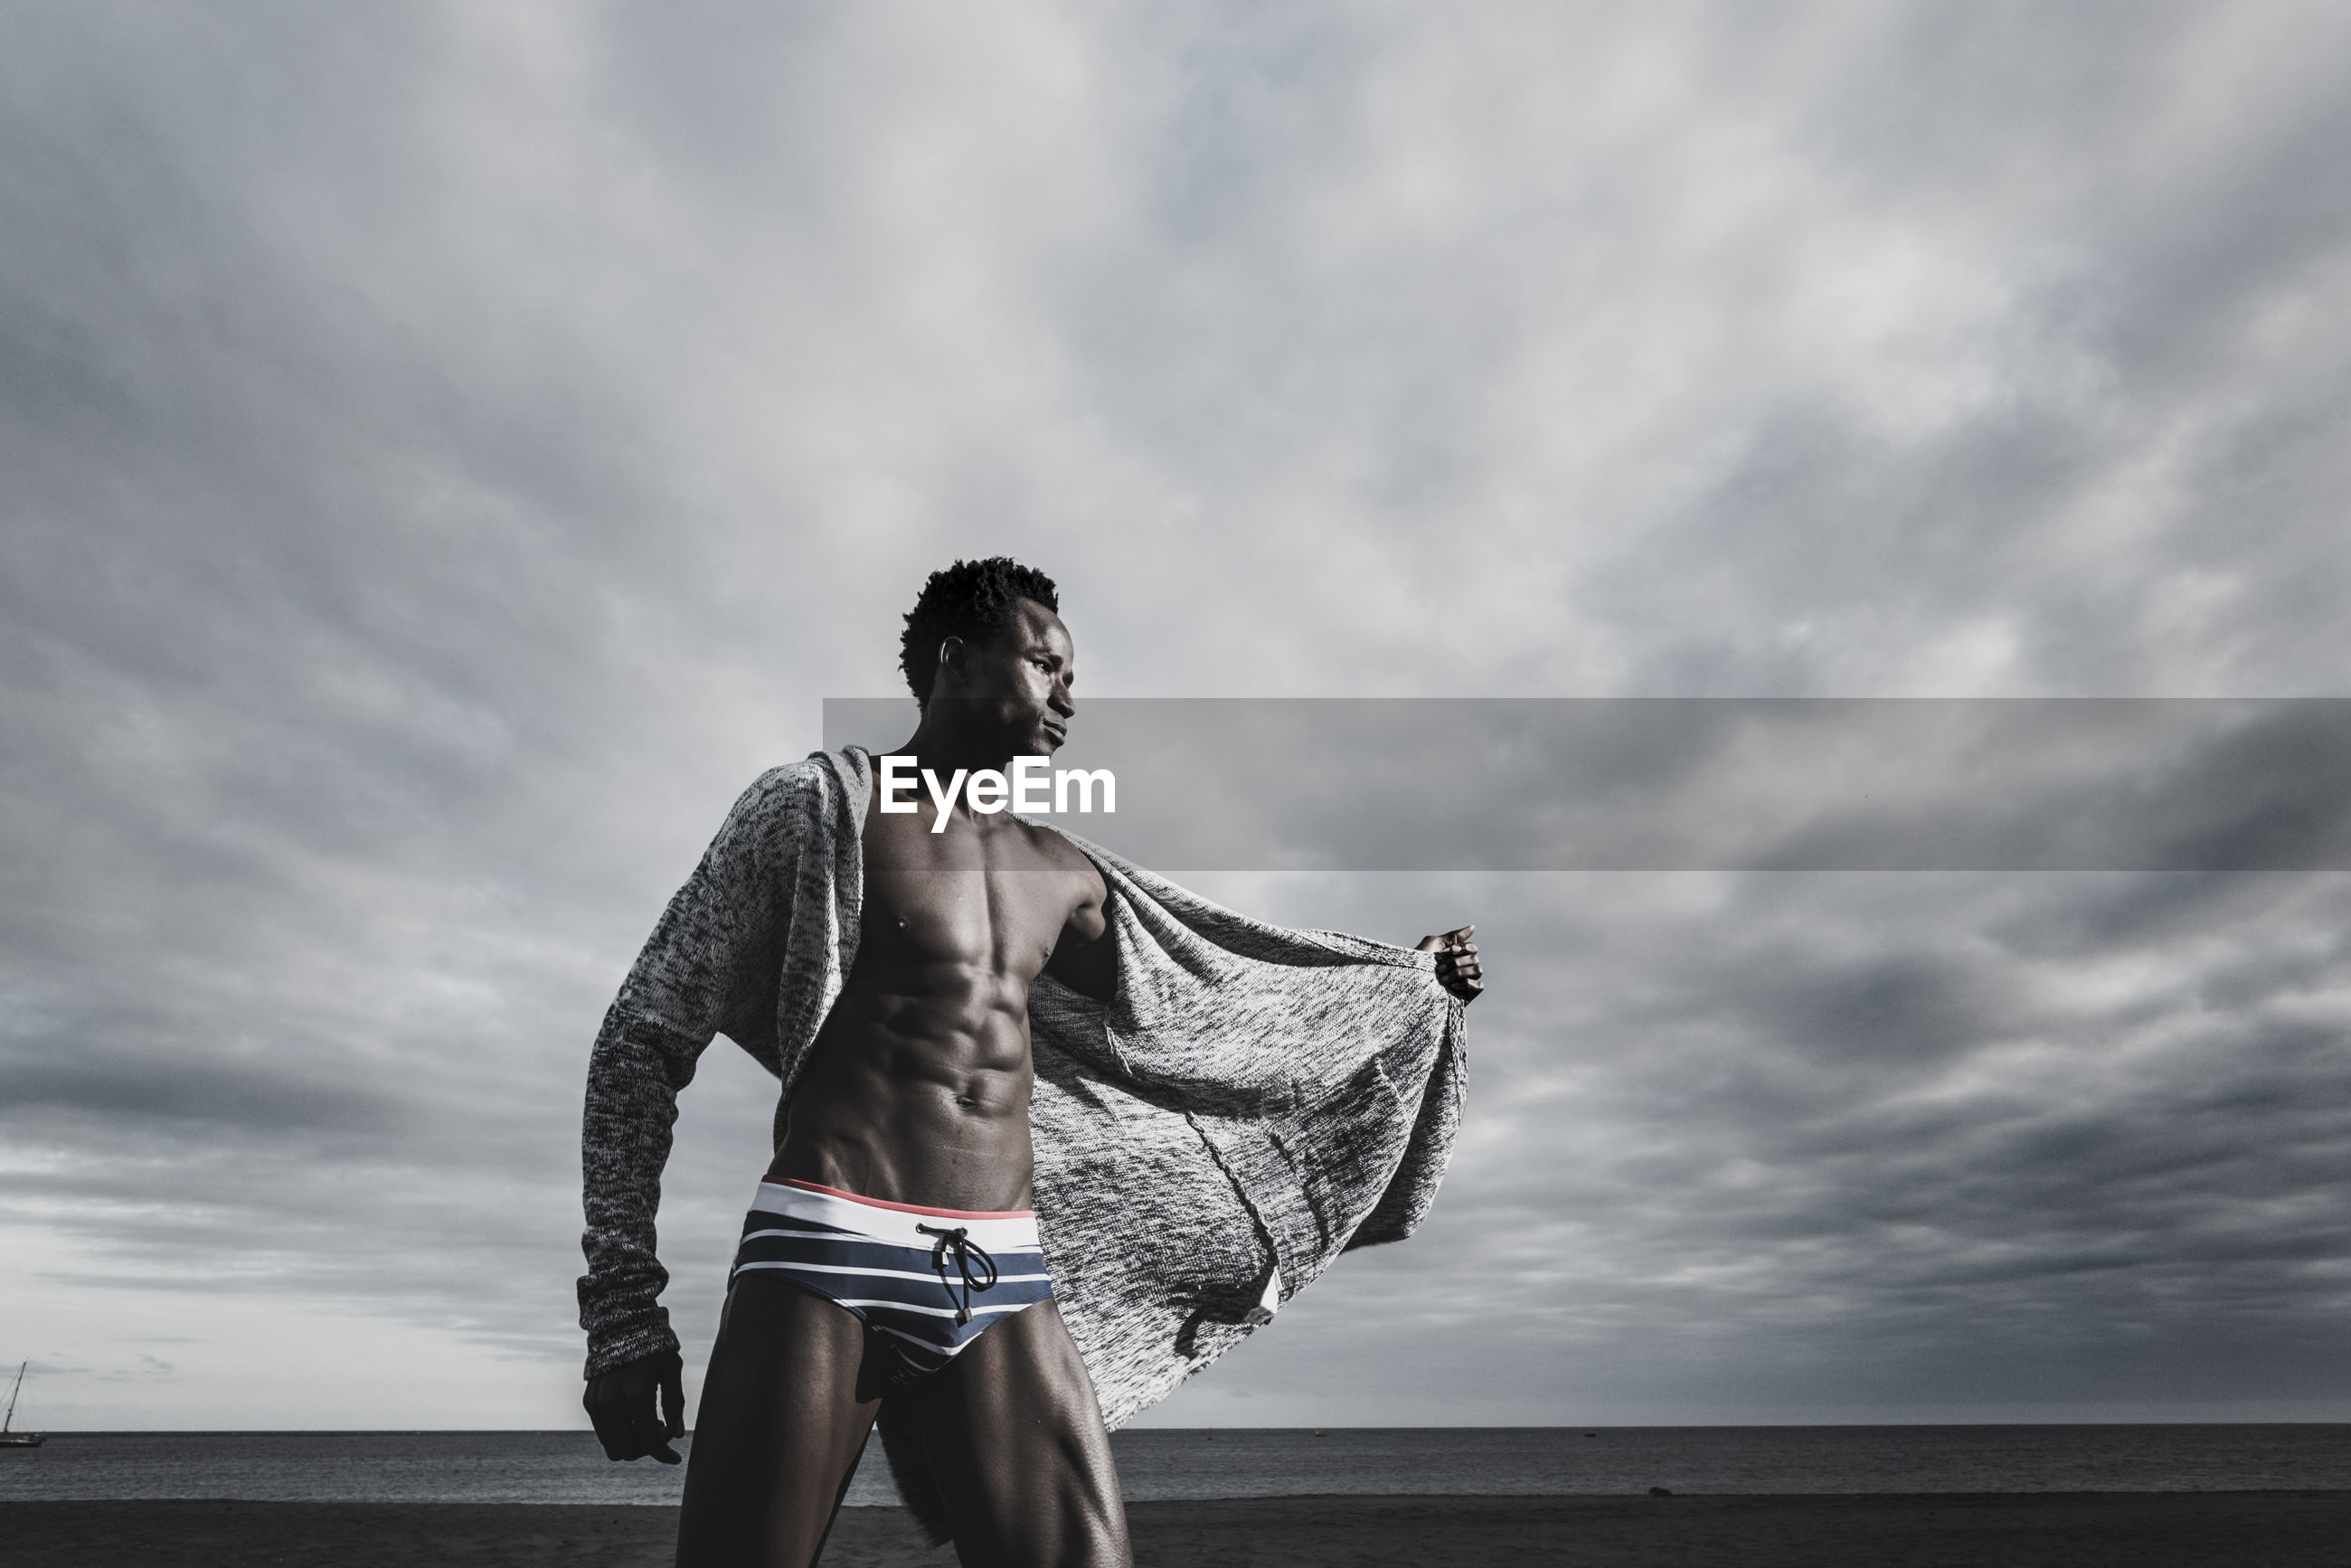 Low angle view of muscular man standing in underwear at beach against cloudy sky